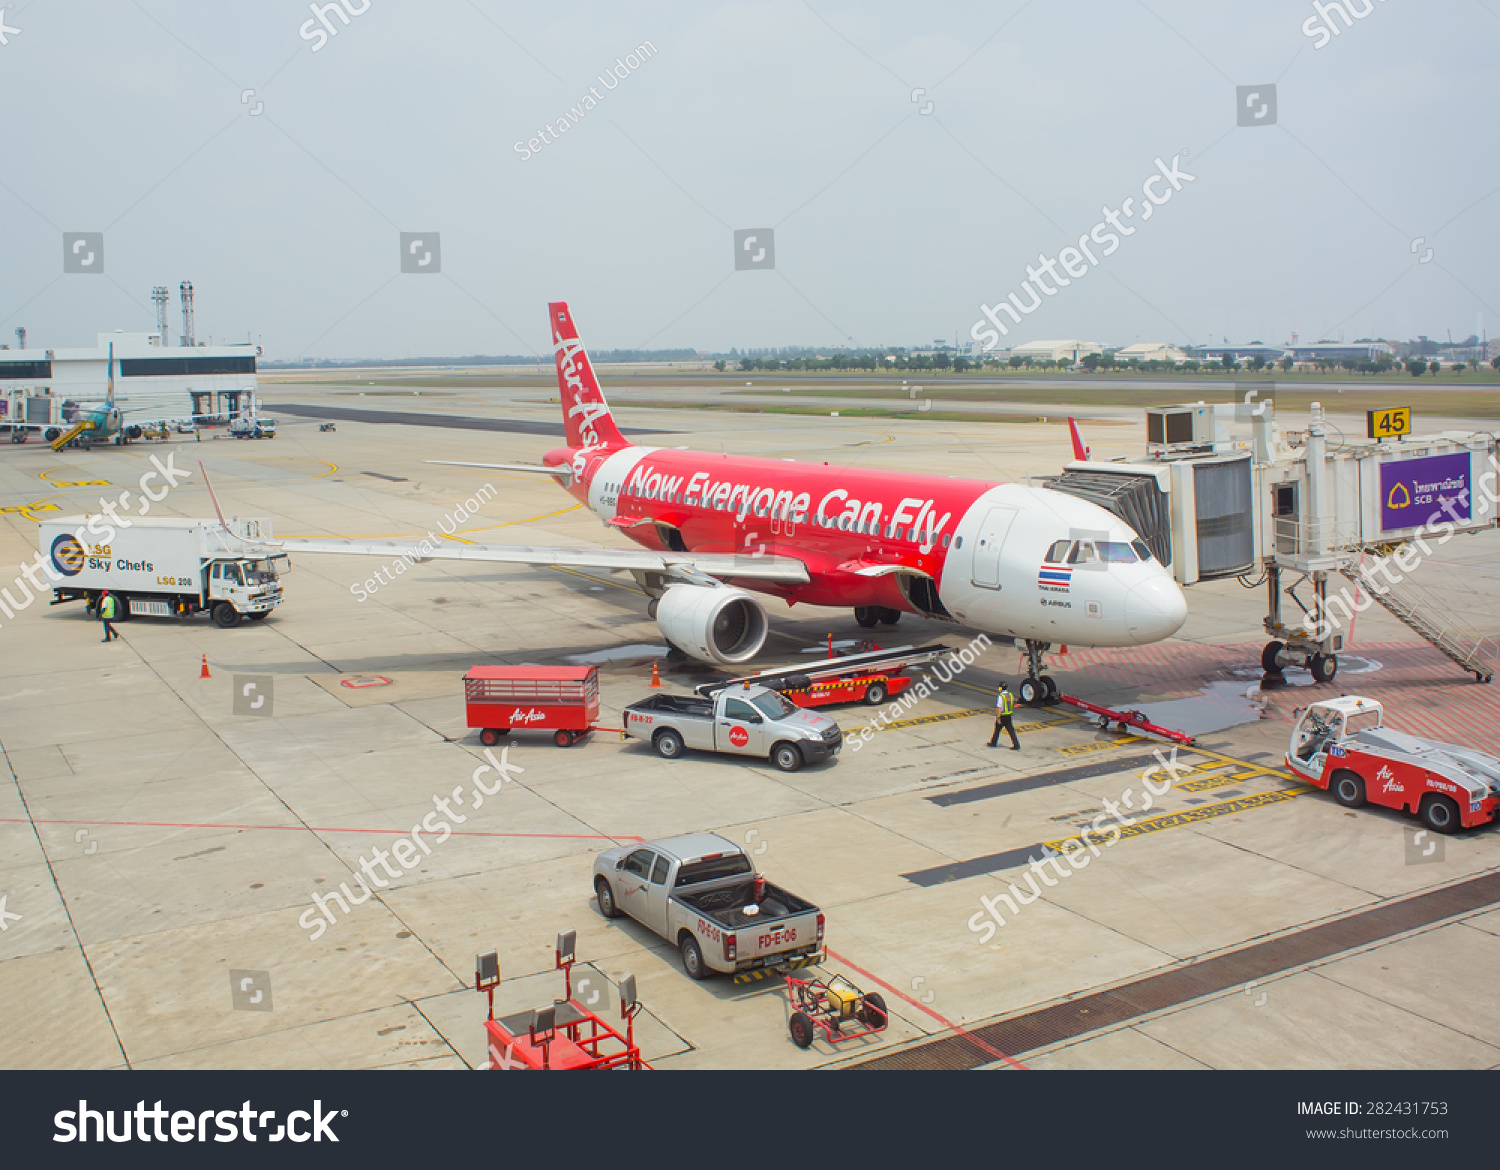 air asia company background The founder and chairman of virgin group that owns 400 companies, will wax  his legs, don a red skirt and walk down the aisle of an airasia.